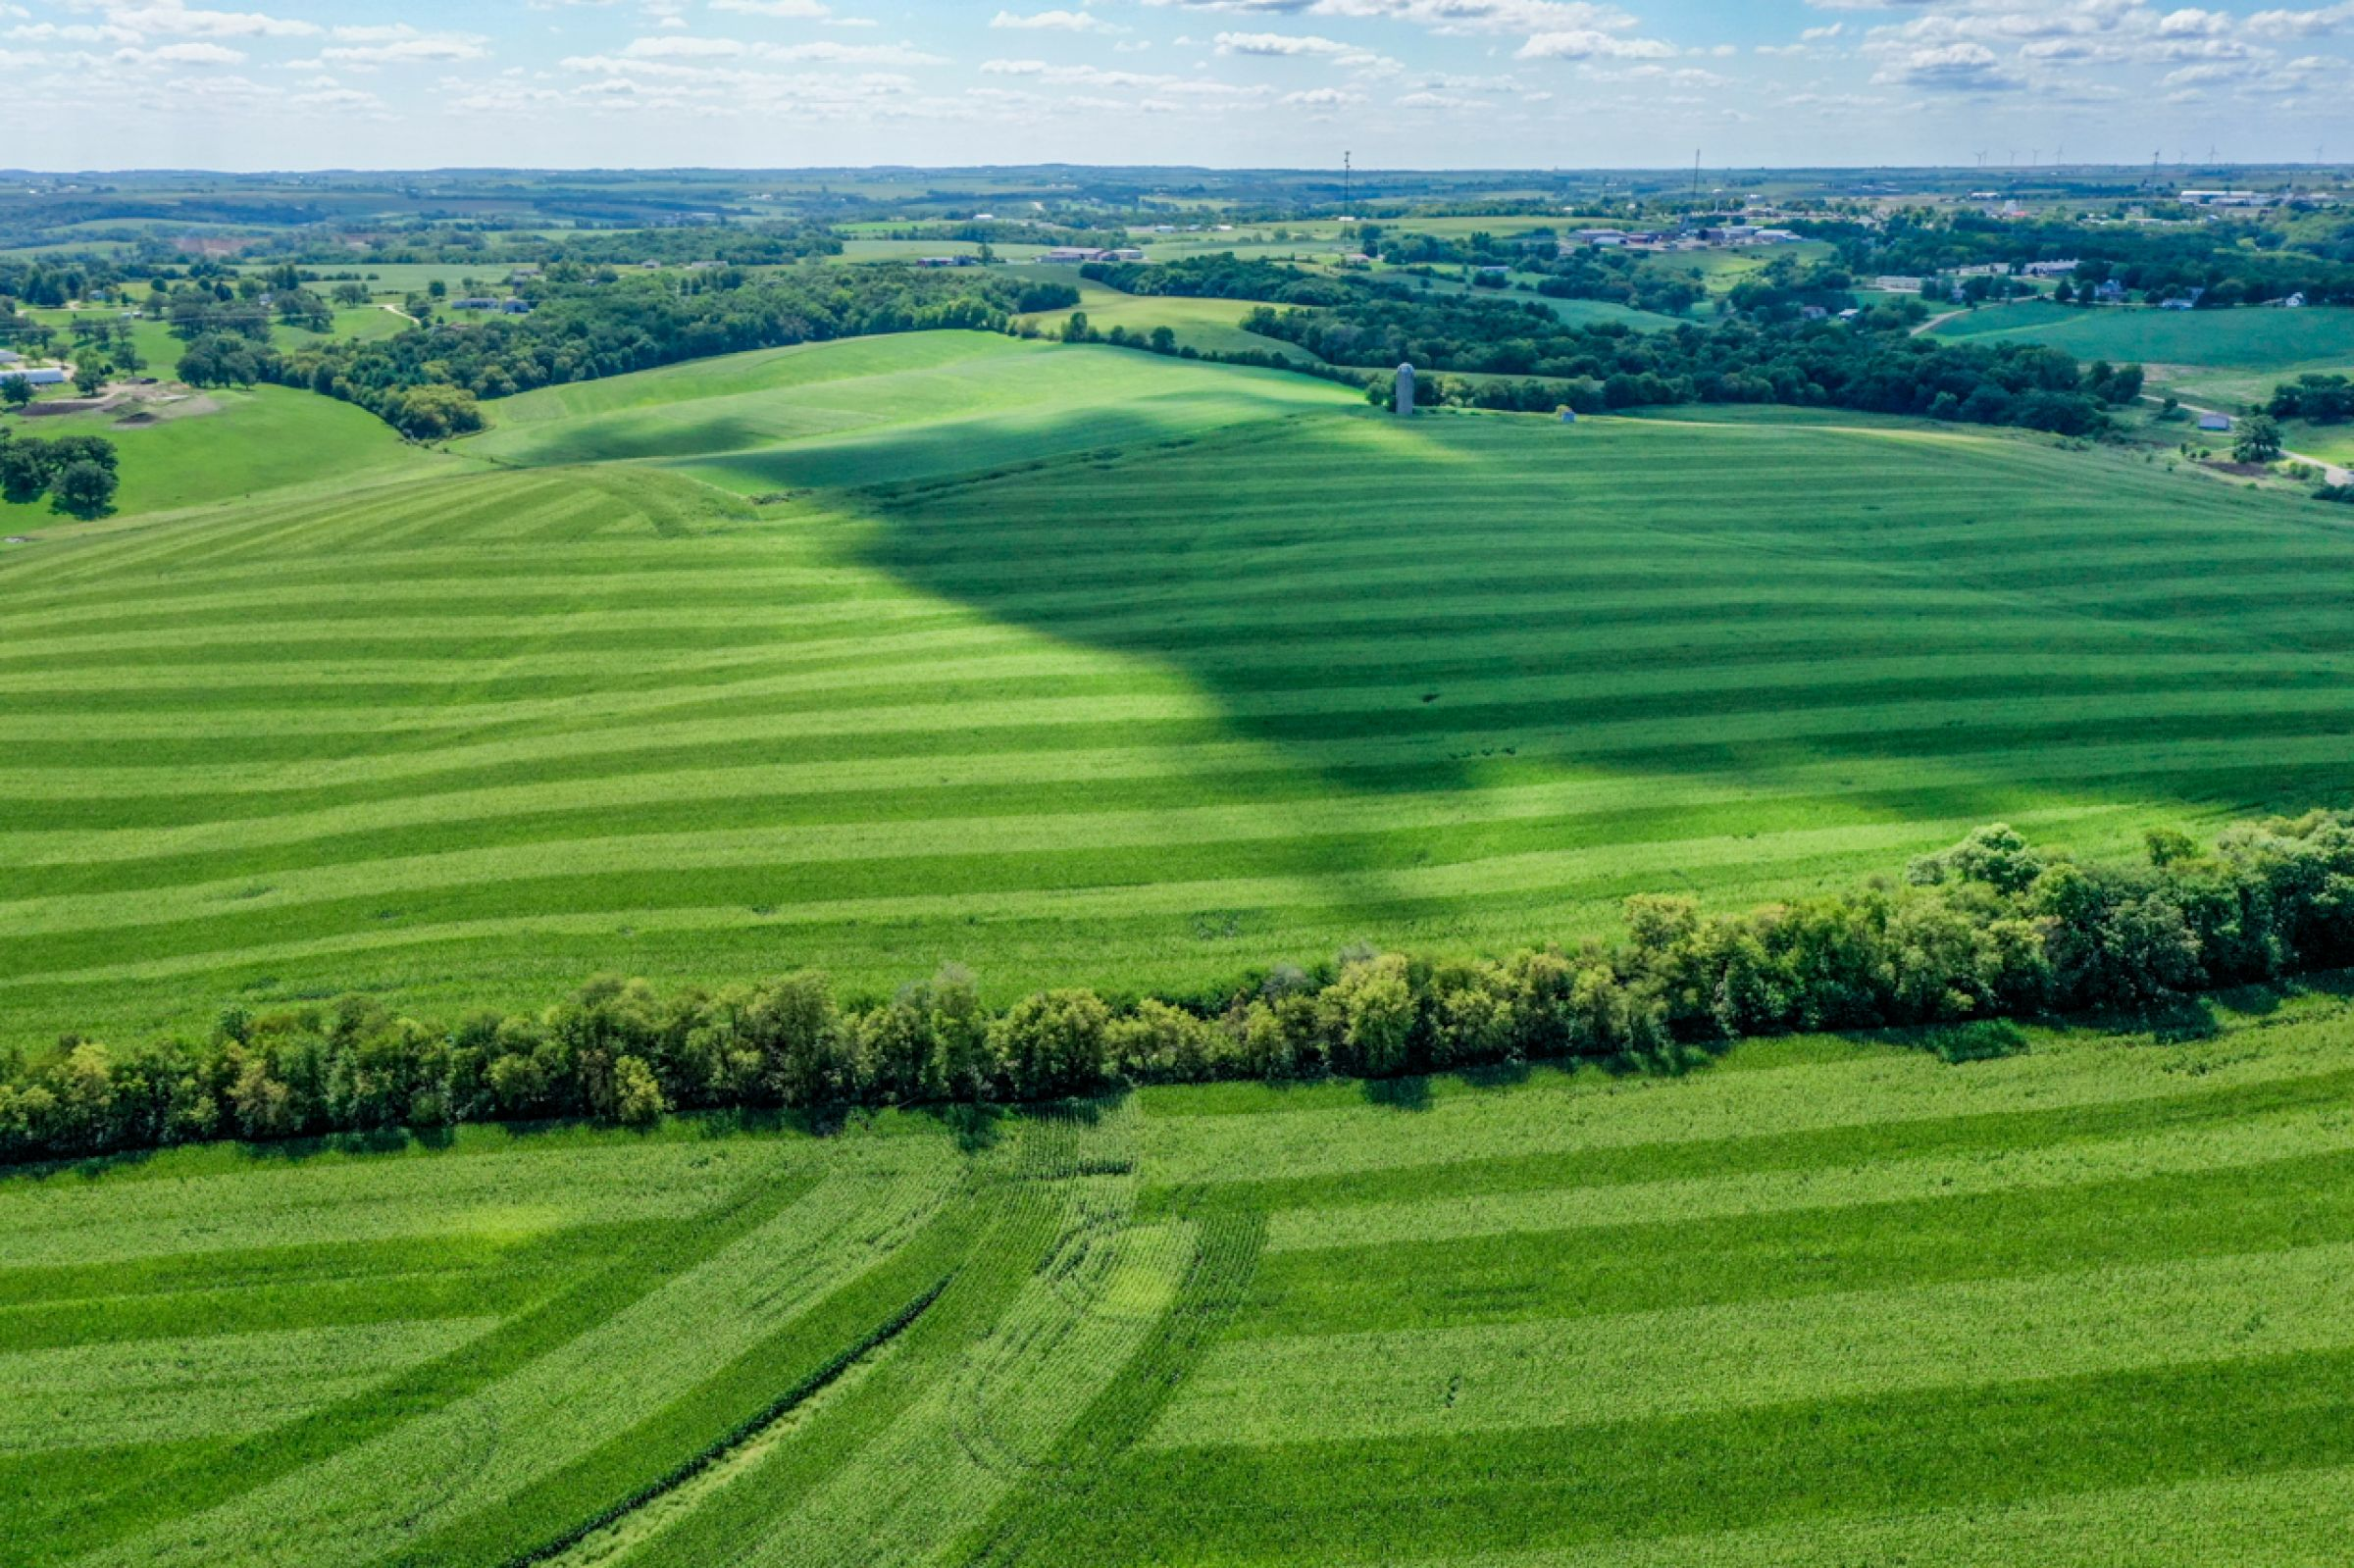 land-lafayette-county-wisconsin-120-acres-listing-number-15729-6-2021-09-03-204842.jpg